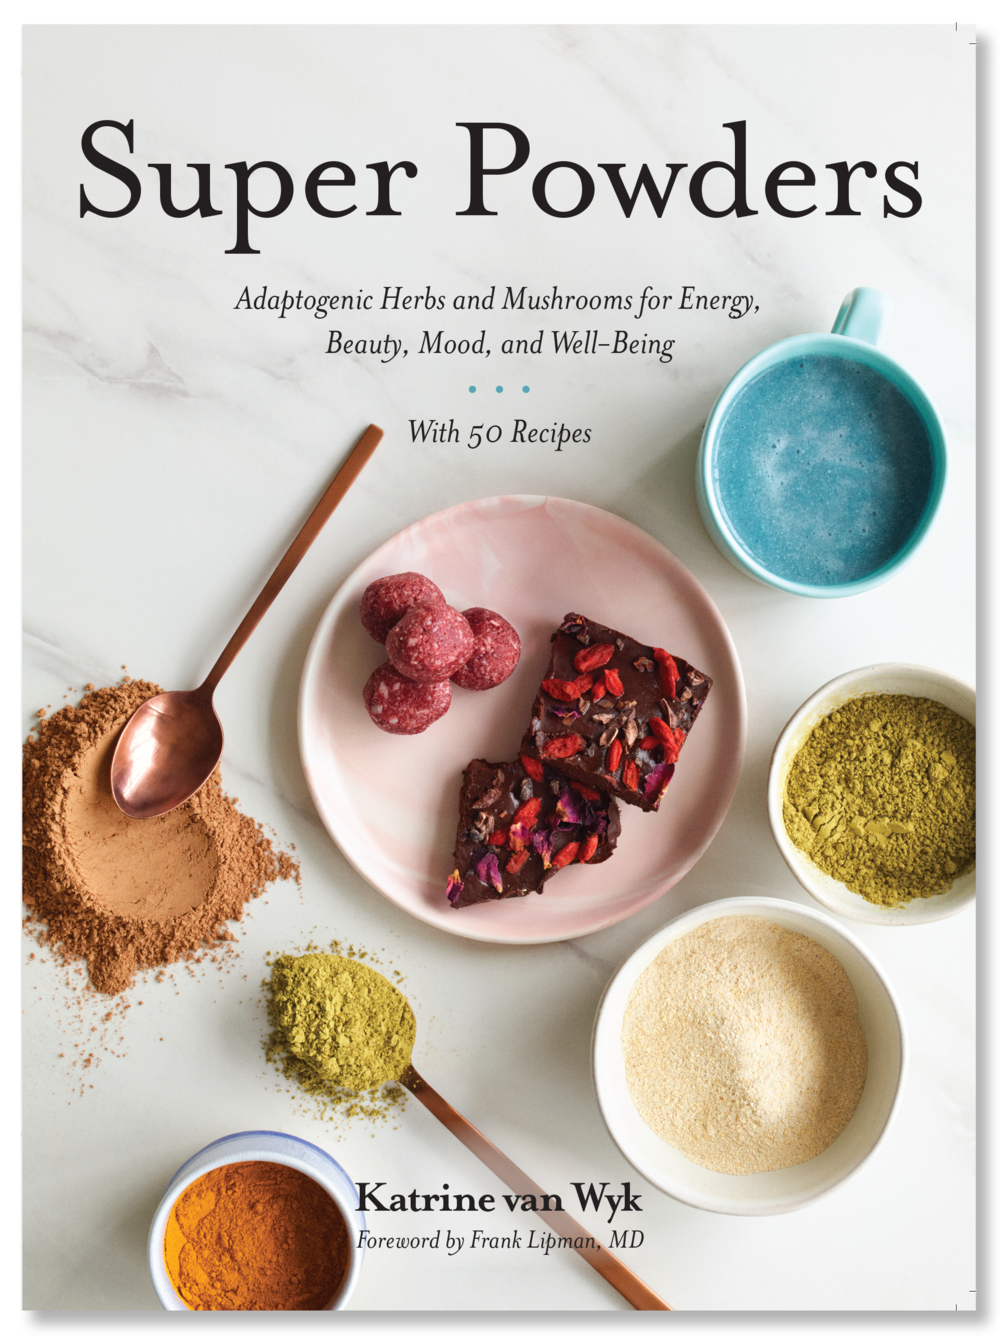 Super Powders Katrine van Wyk